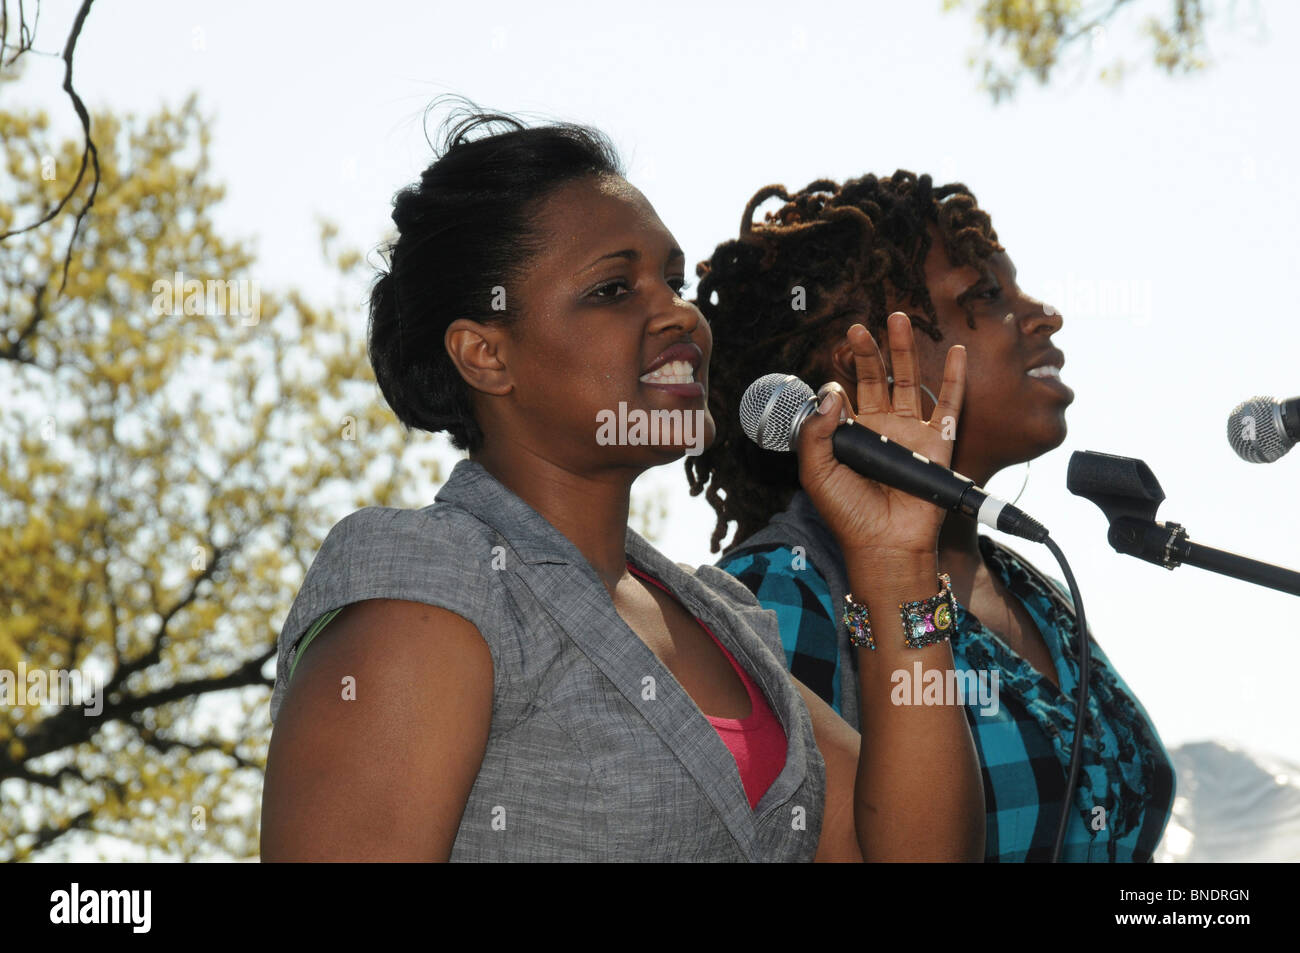 Young singer duet in Takoma Park, Maryland - Stock Image